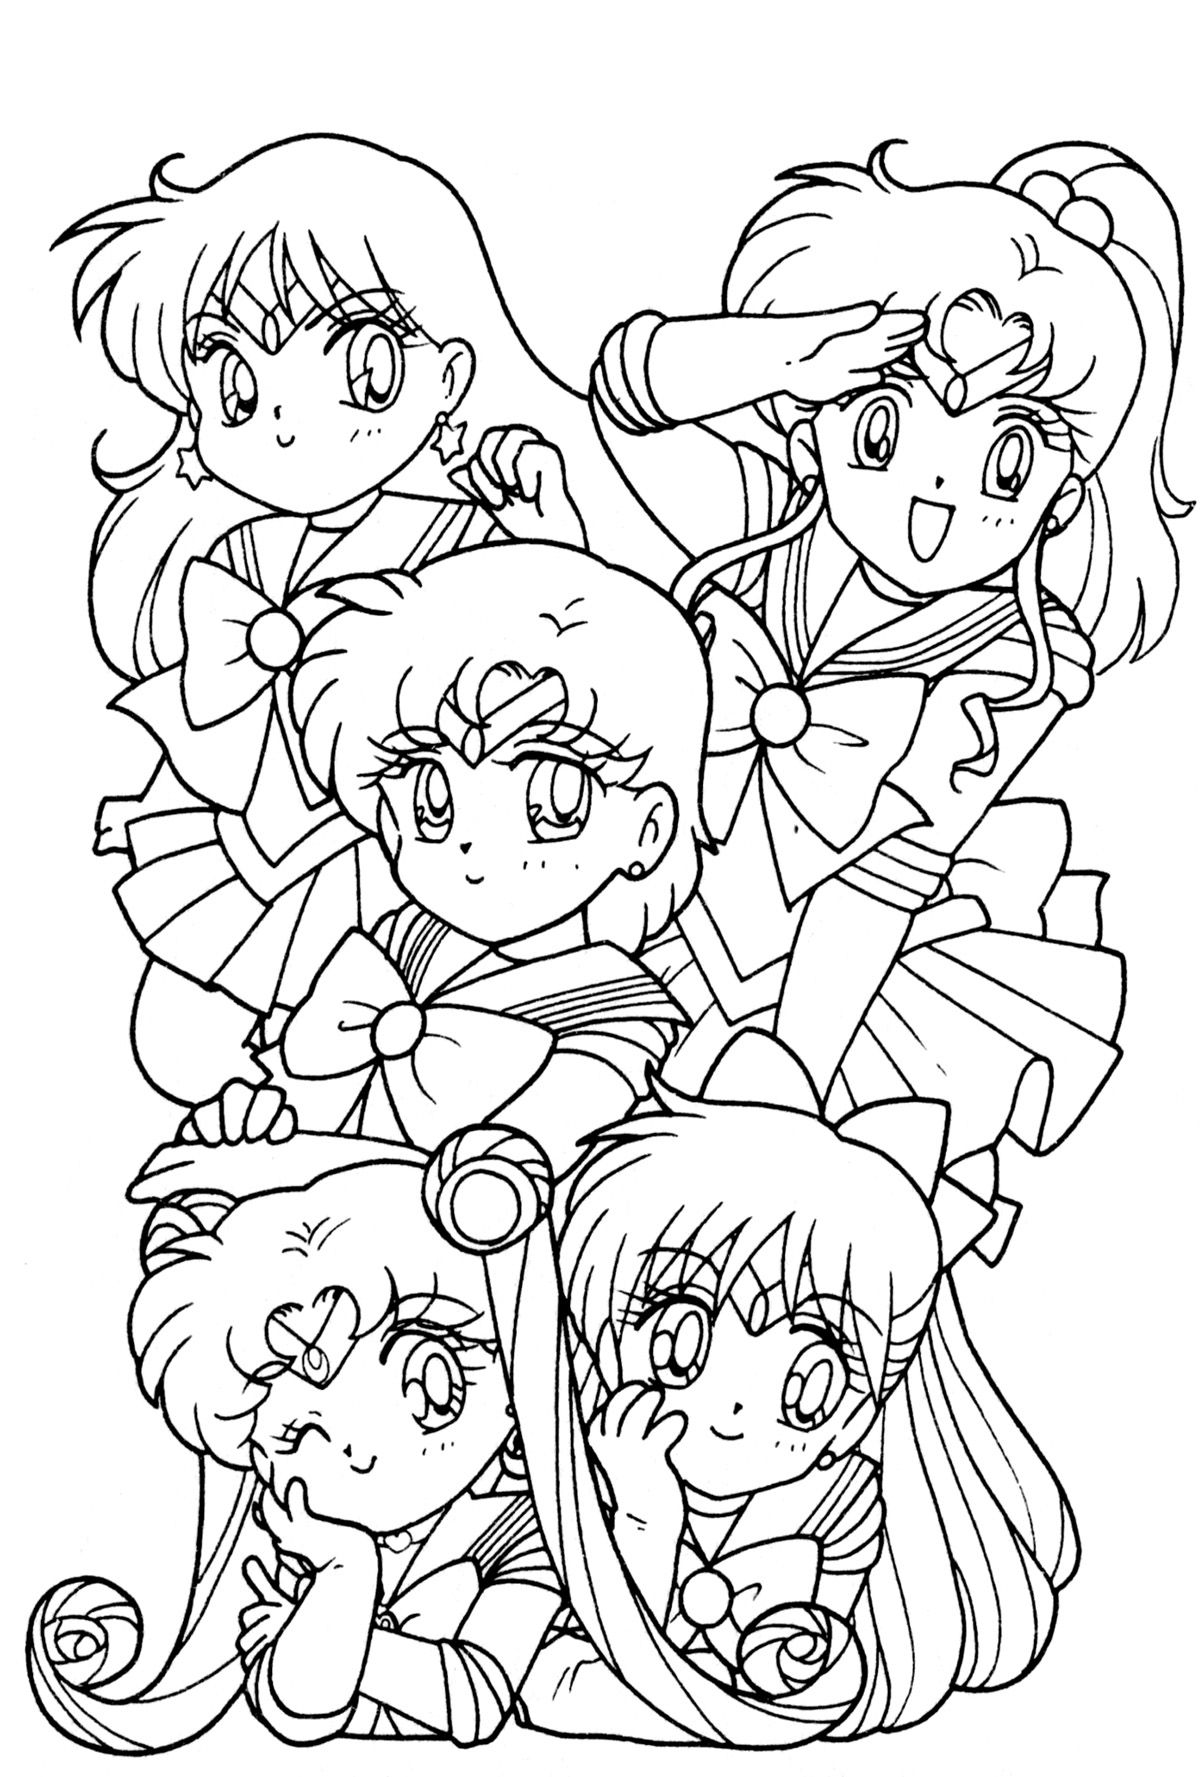 sailor chibi | Sailor moon | Pinterest | Colorear, Sailor moon y ...